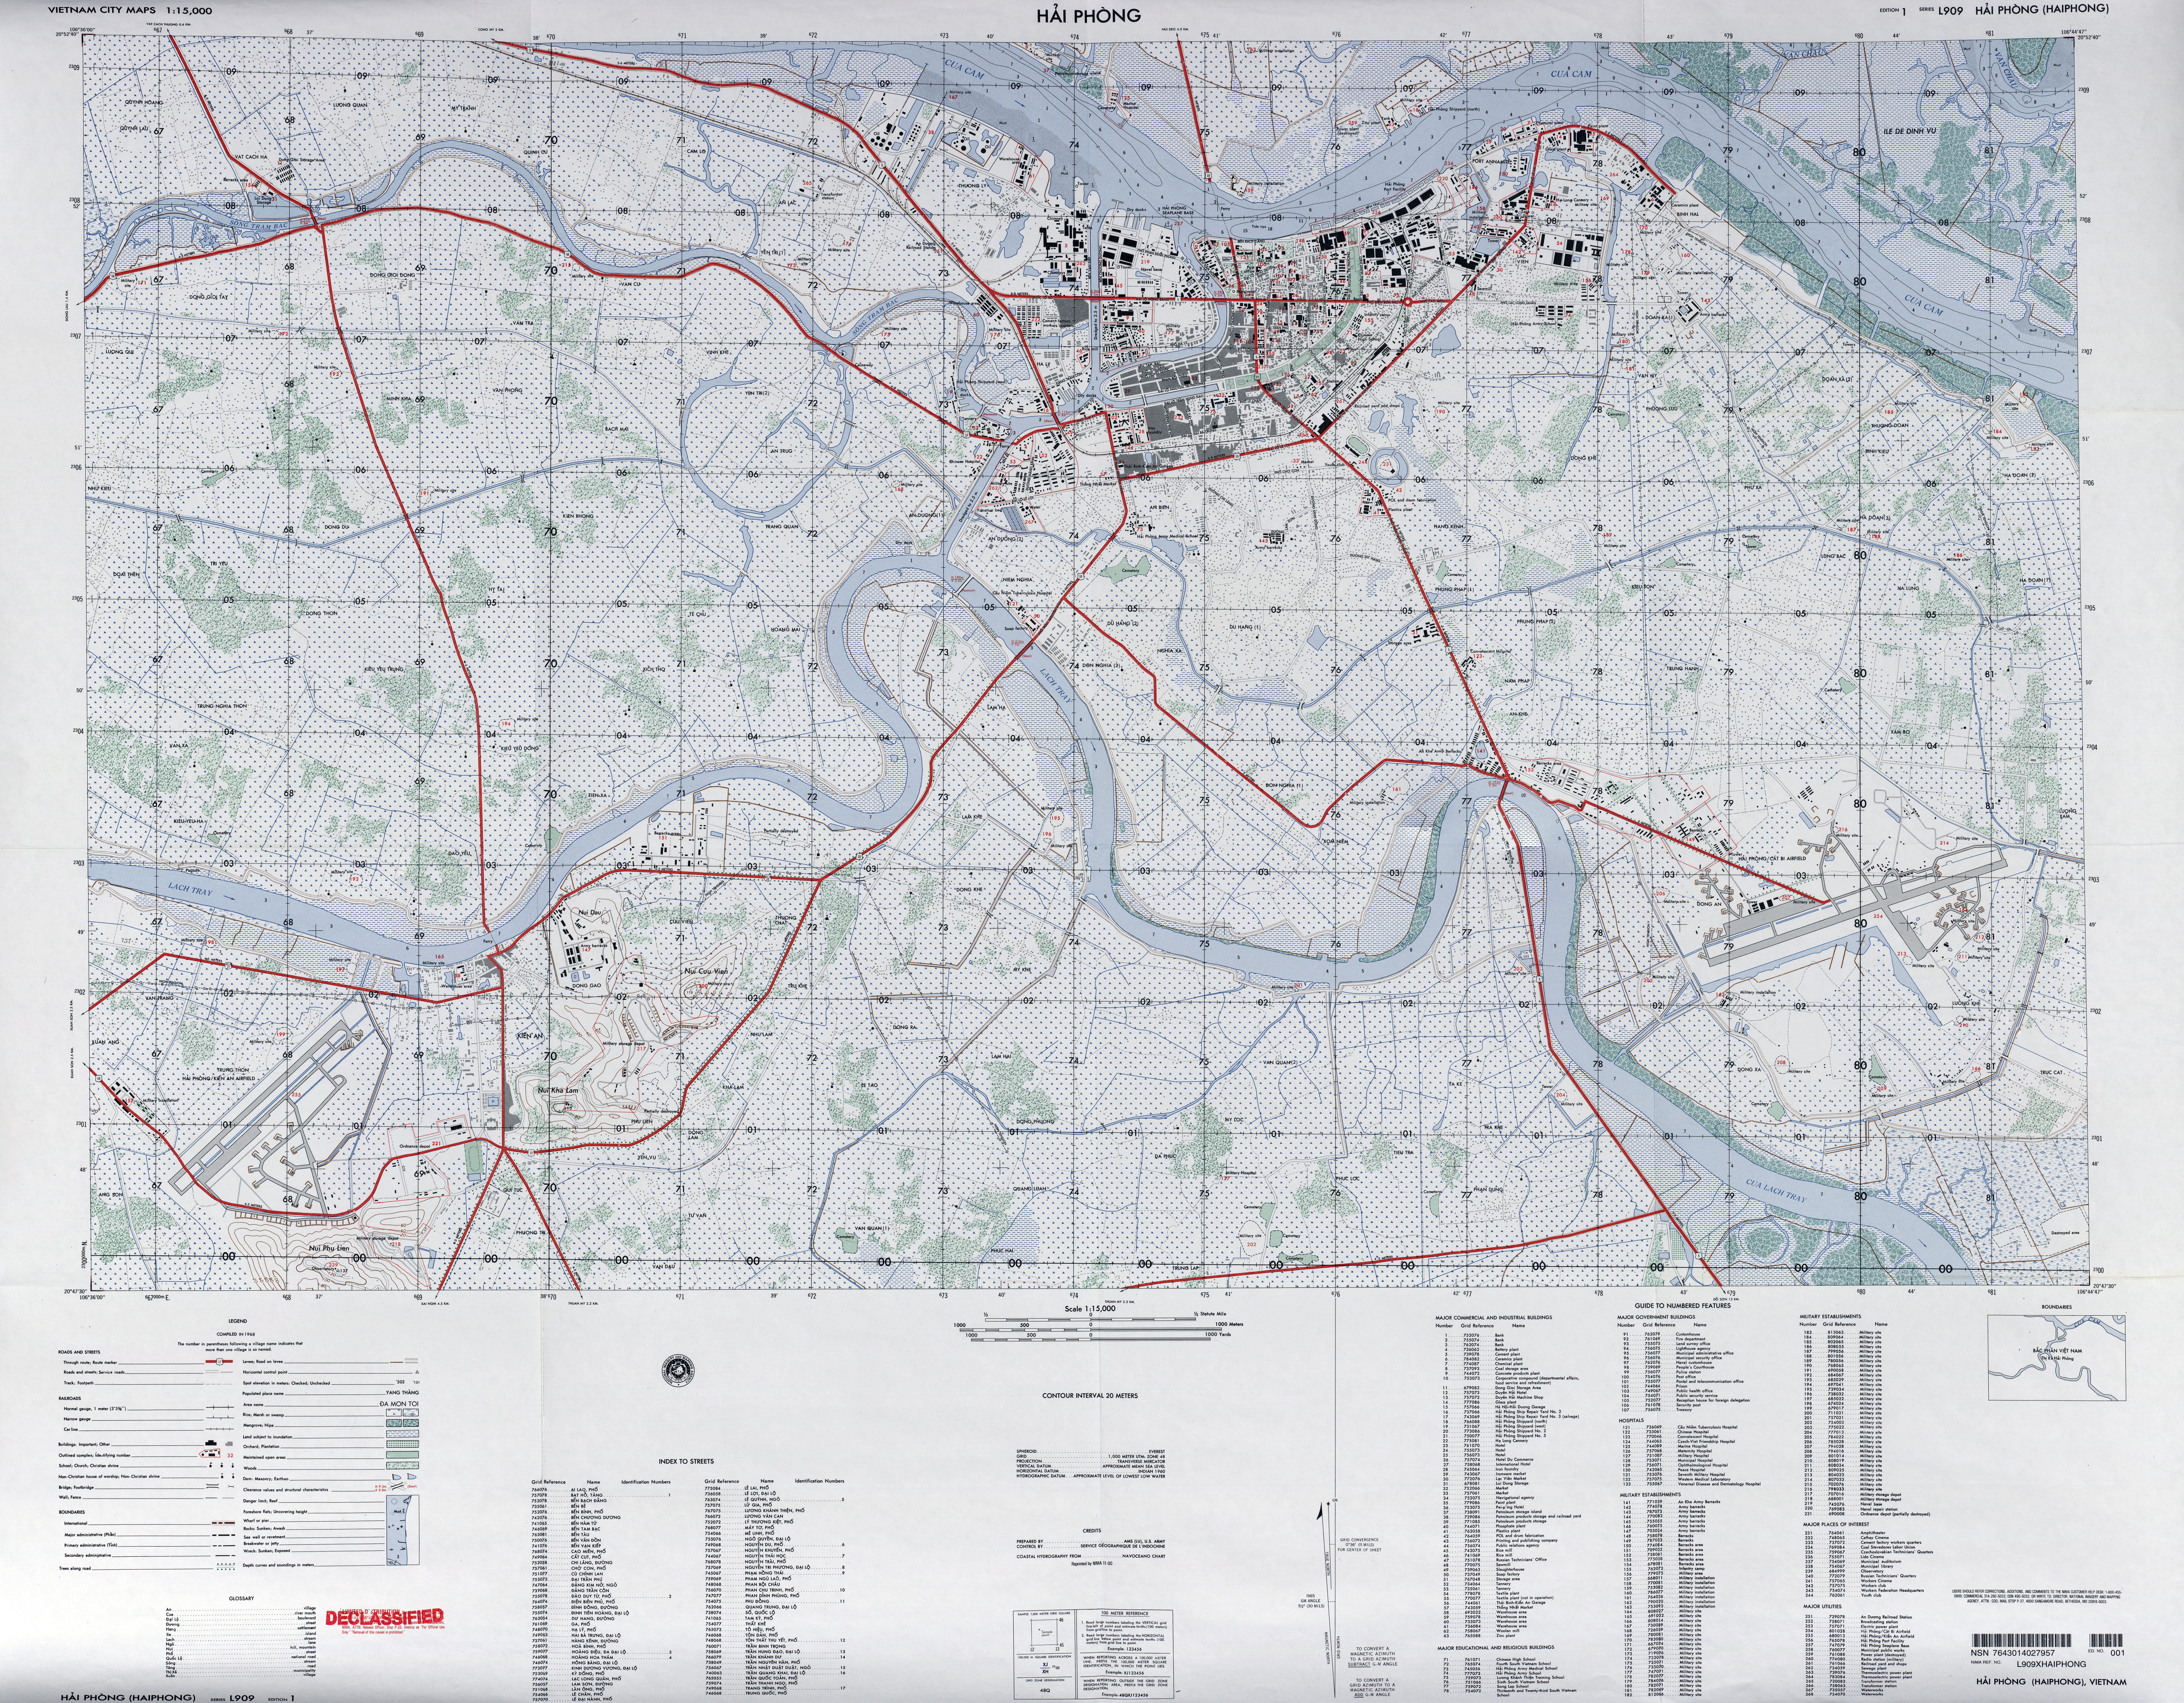 Vietnam Maps PerryCastañeda Map Collection UT Library Online - Change map of 1968 us